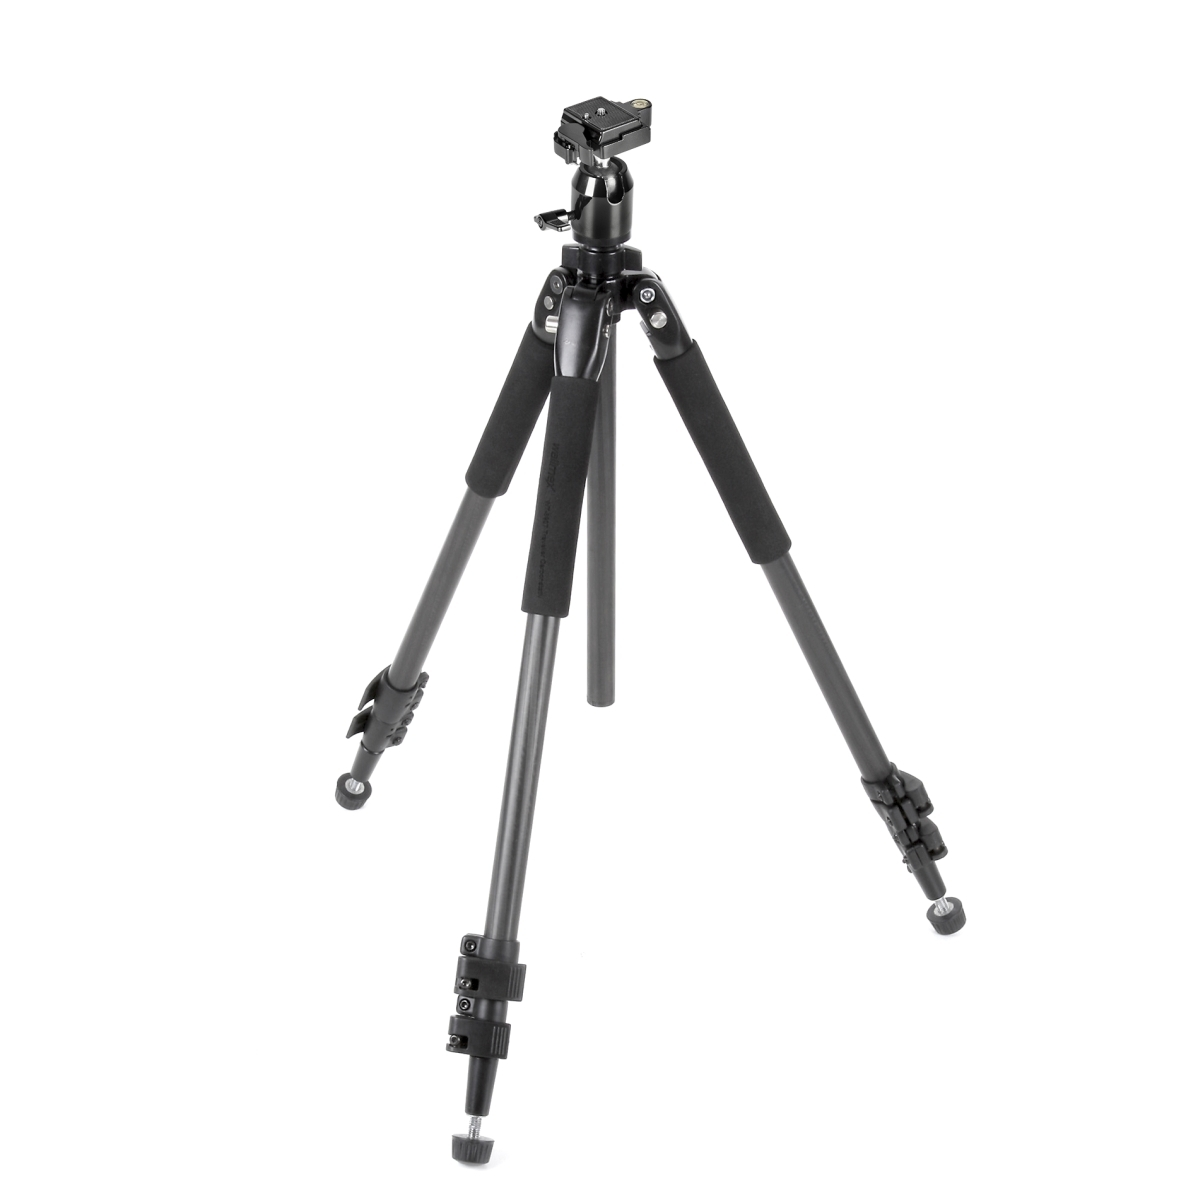 Walimex pro WT-890T Carbon + Ball Head FT-002H